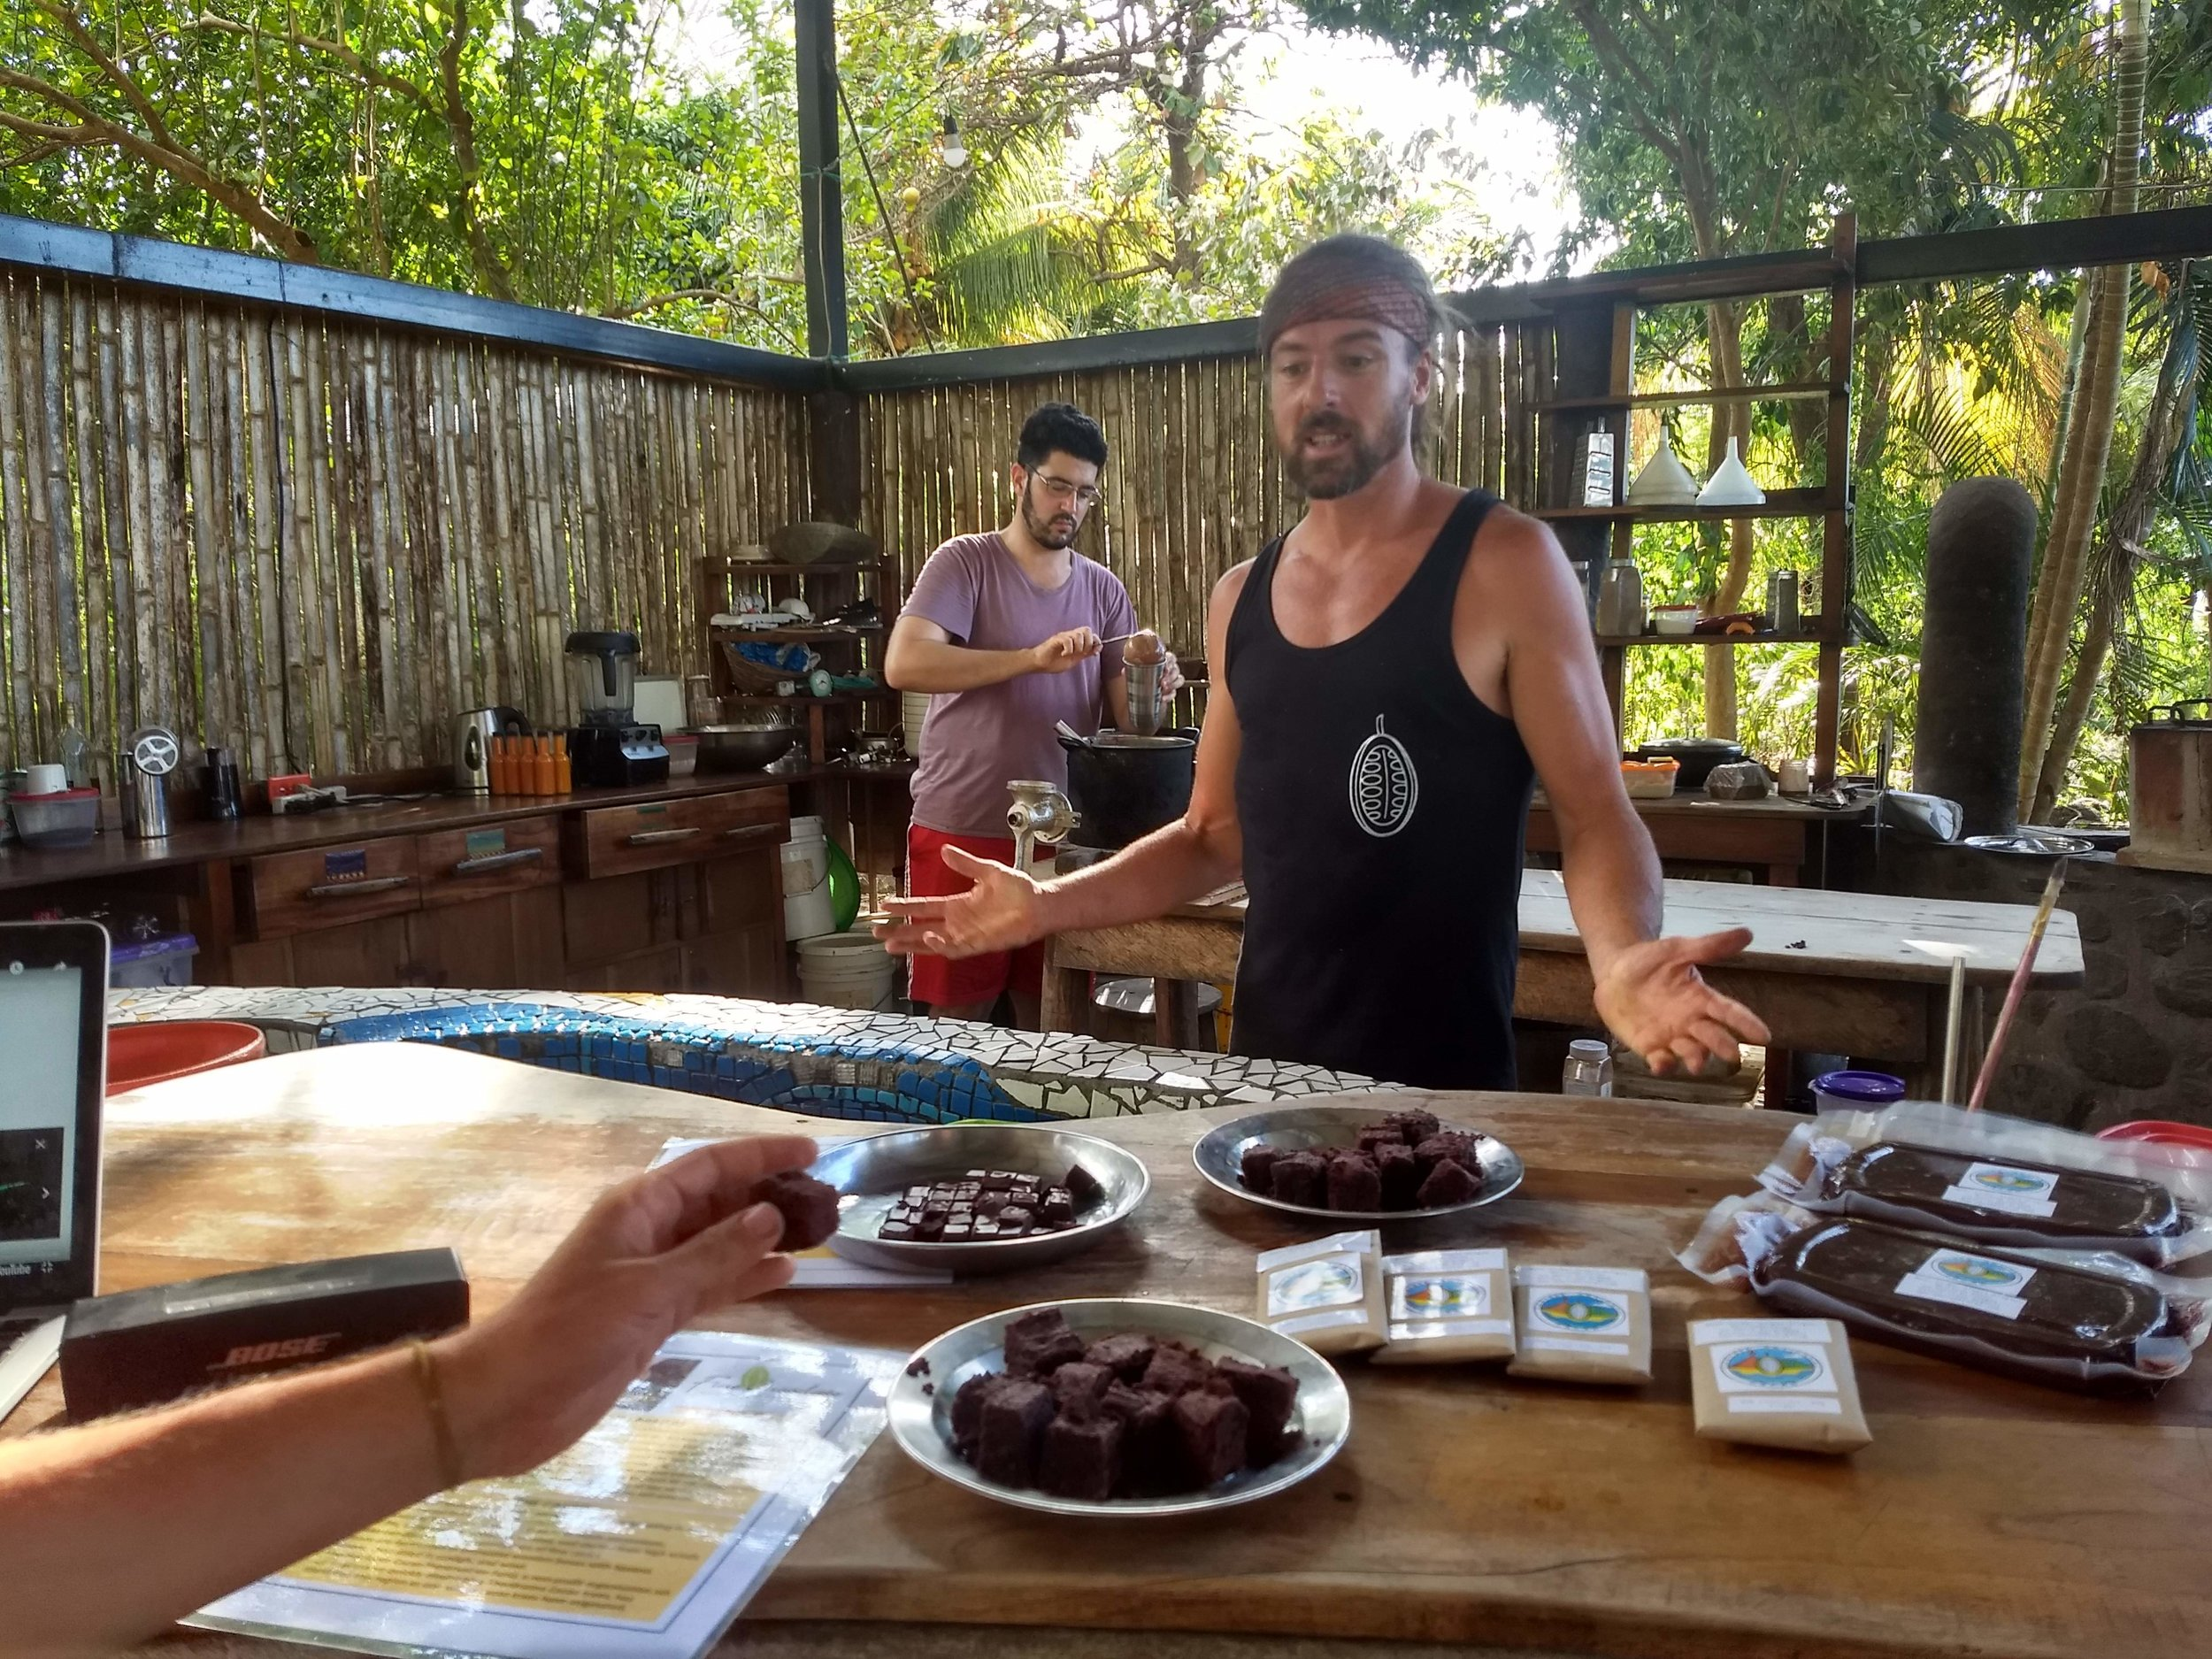 chocolate making introduction - permaculture design and principles Central America Isla Ometepe 2020